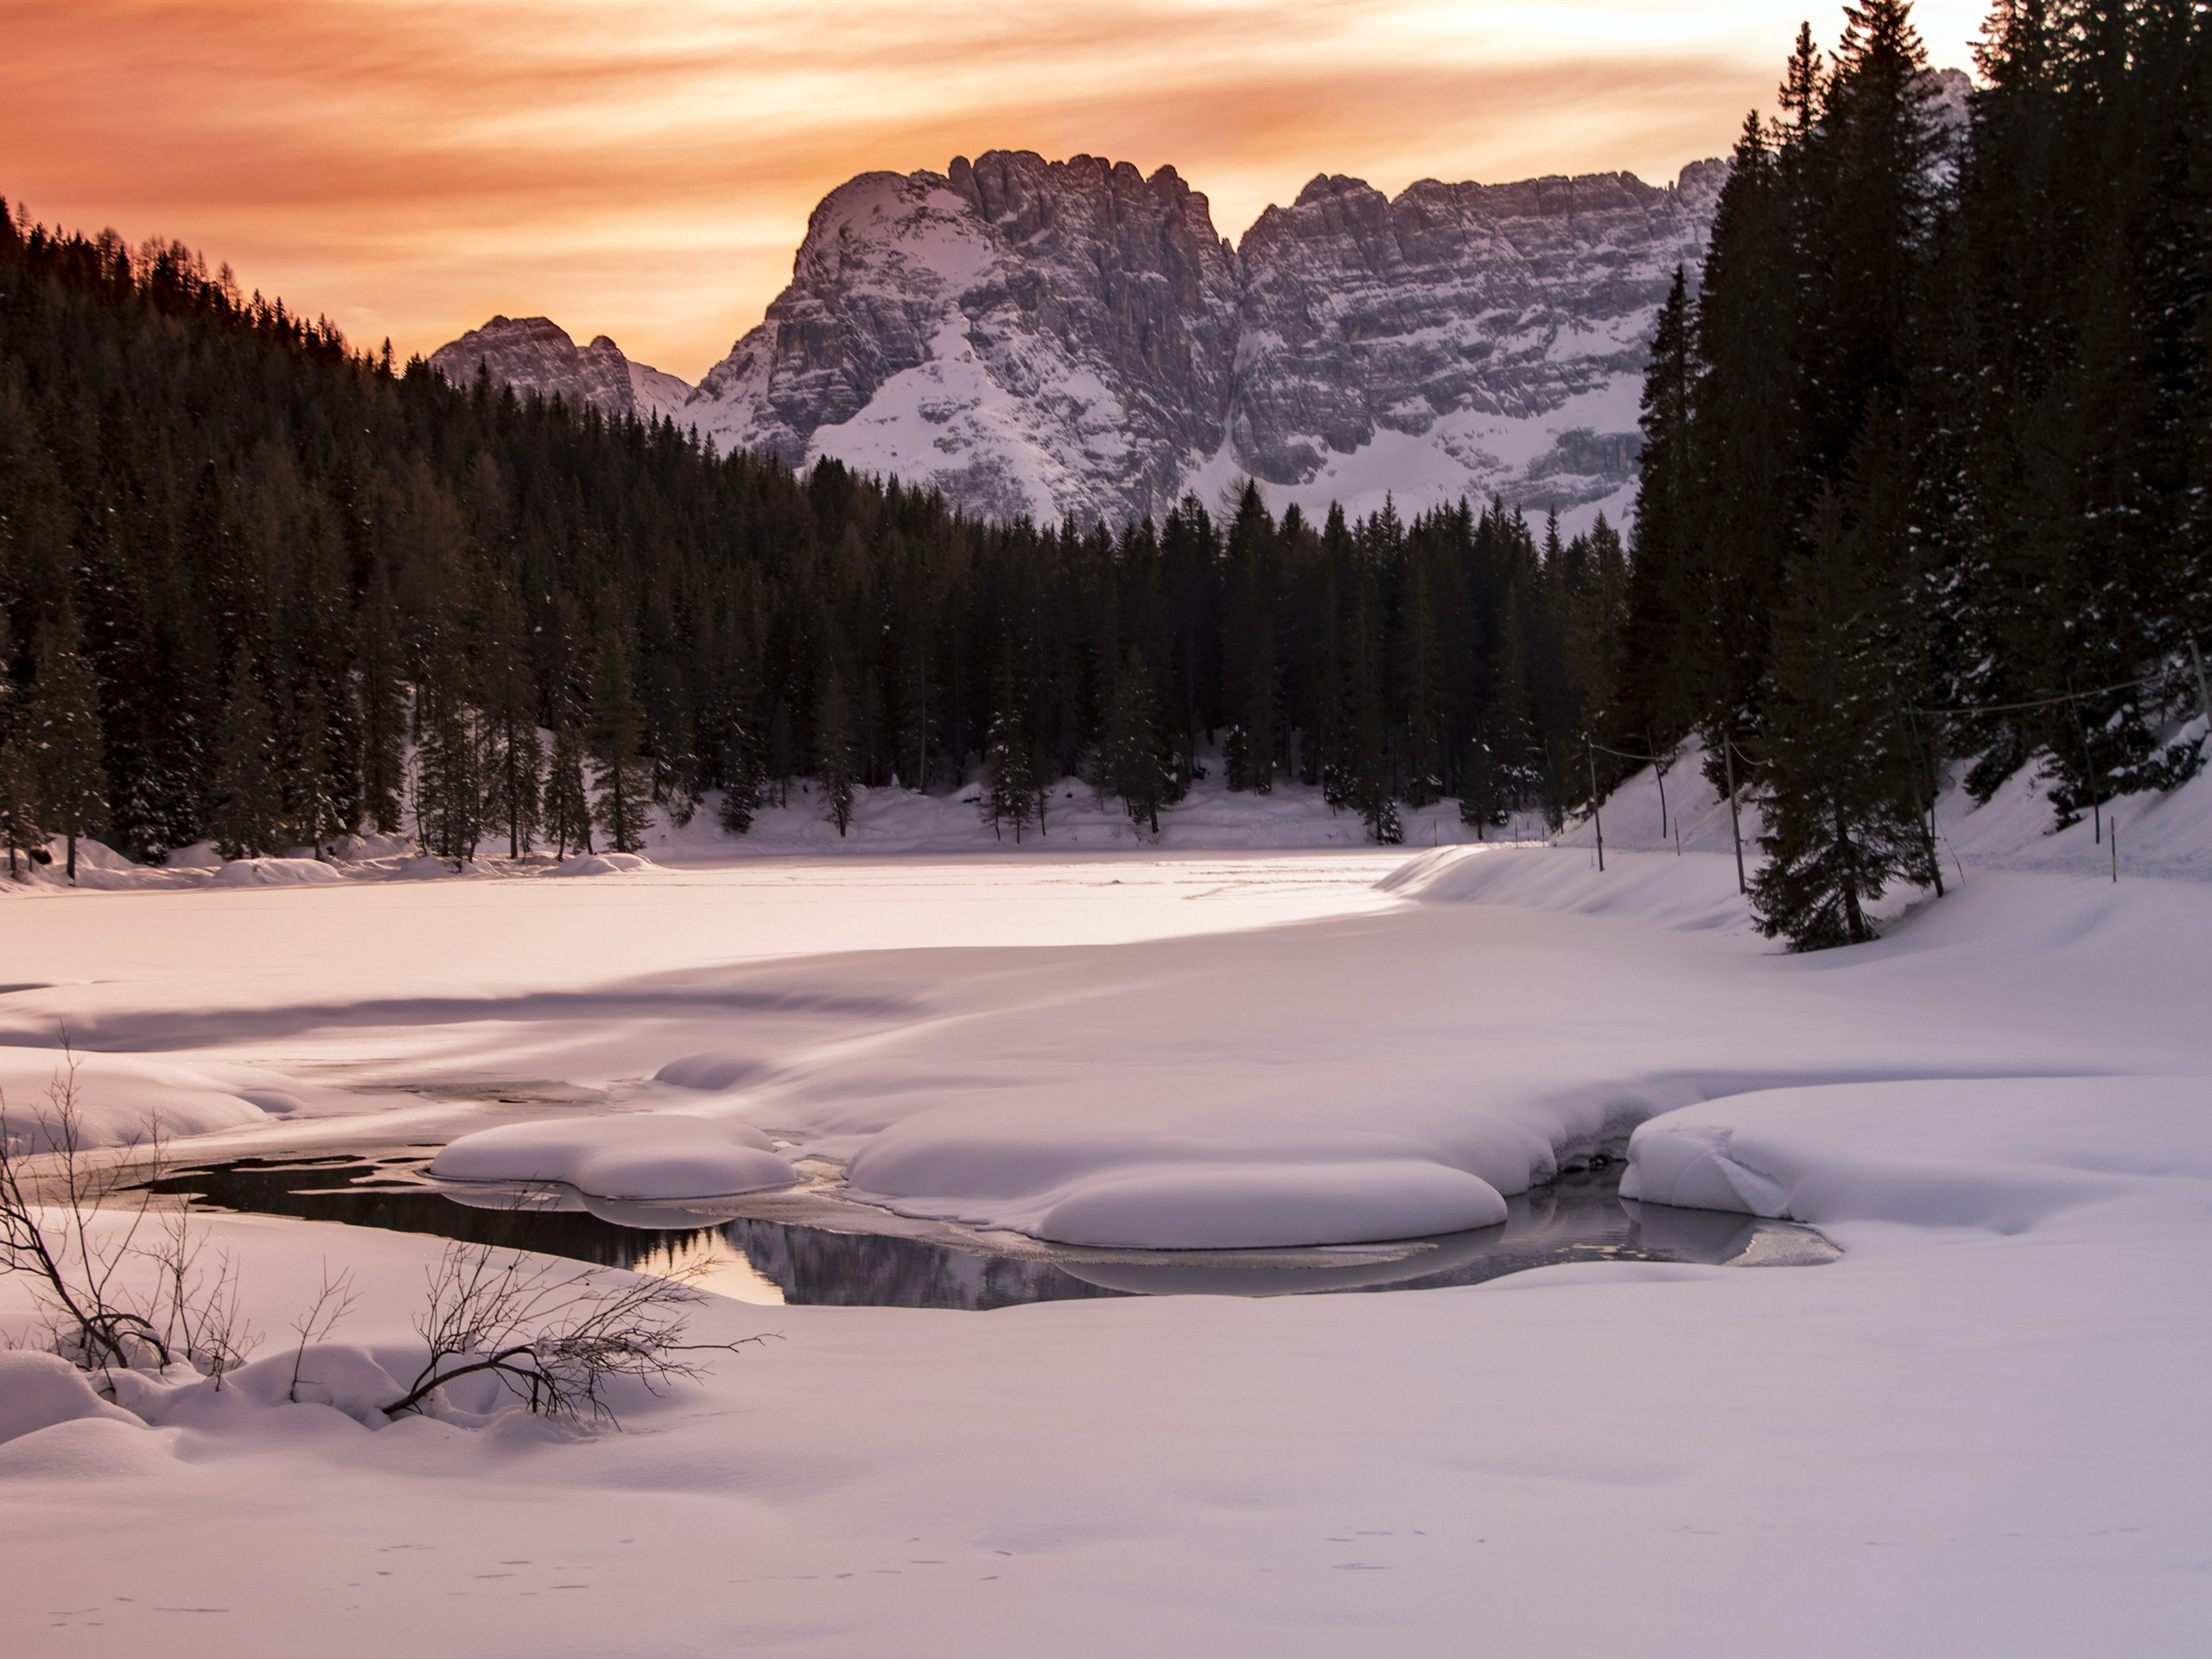 Winter jungle Alpine ice snow sunset - 2560x1920 wallpaper download